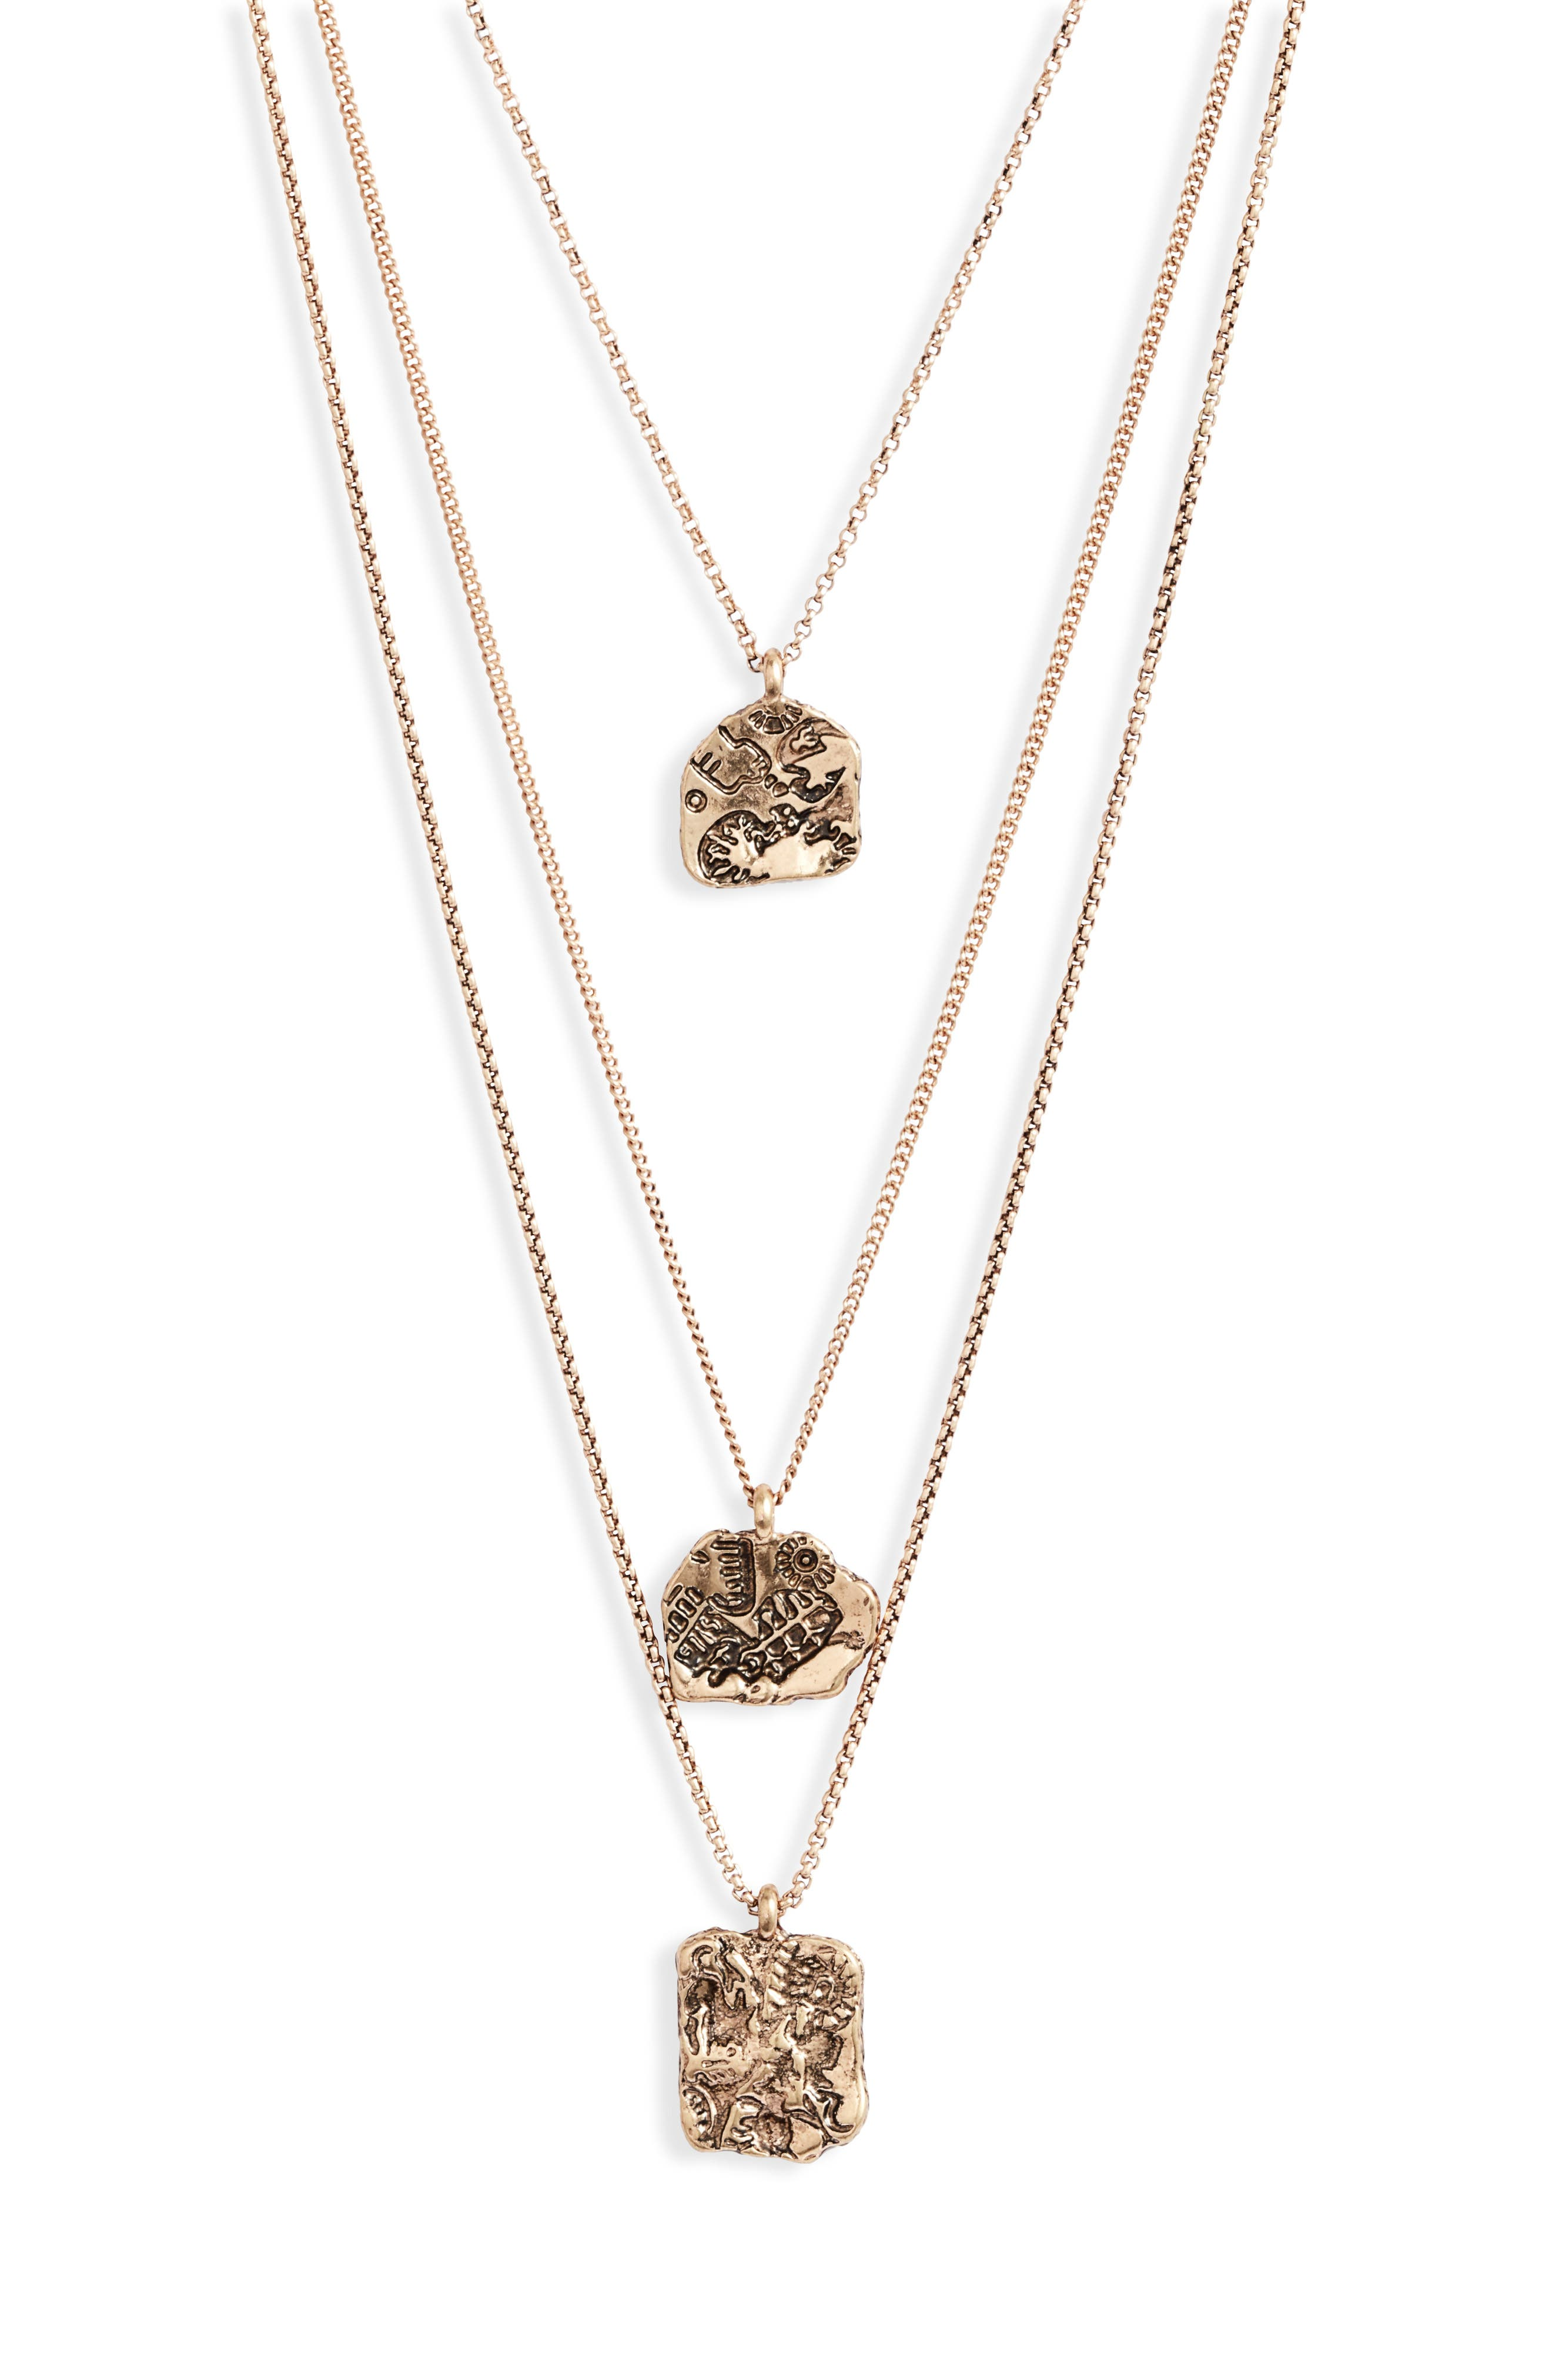 Astrological Charm Layered Necklace